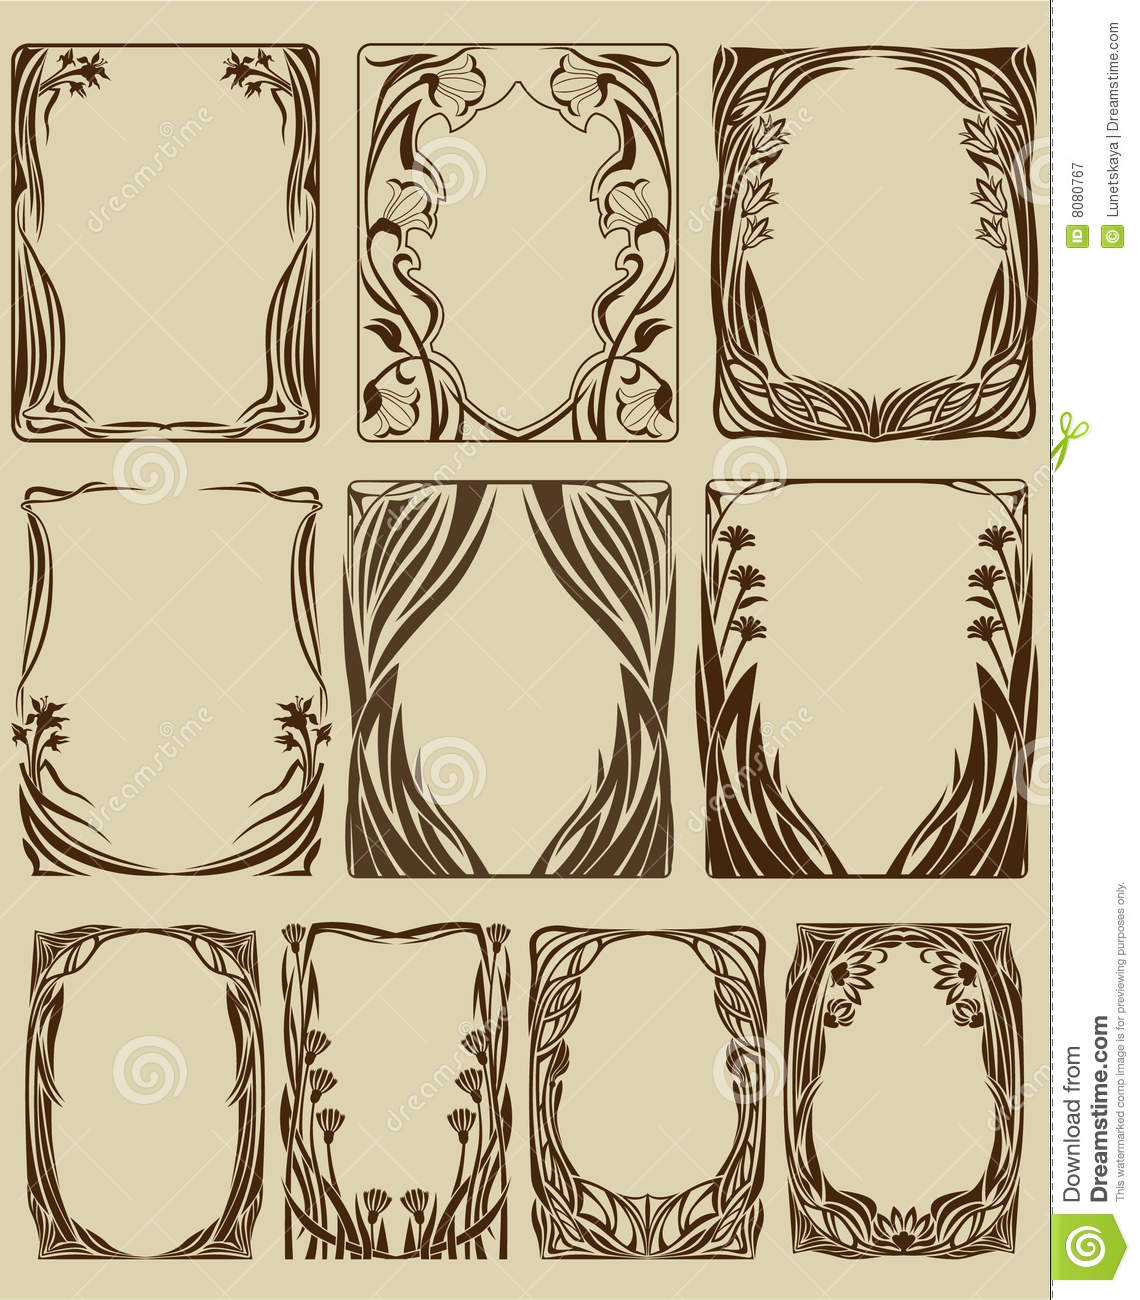 frames on pinterest art nouveau clip art and decorative. Black Bedroom Furniture Sets. Home Design Ideas